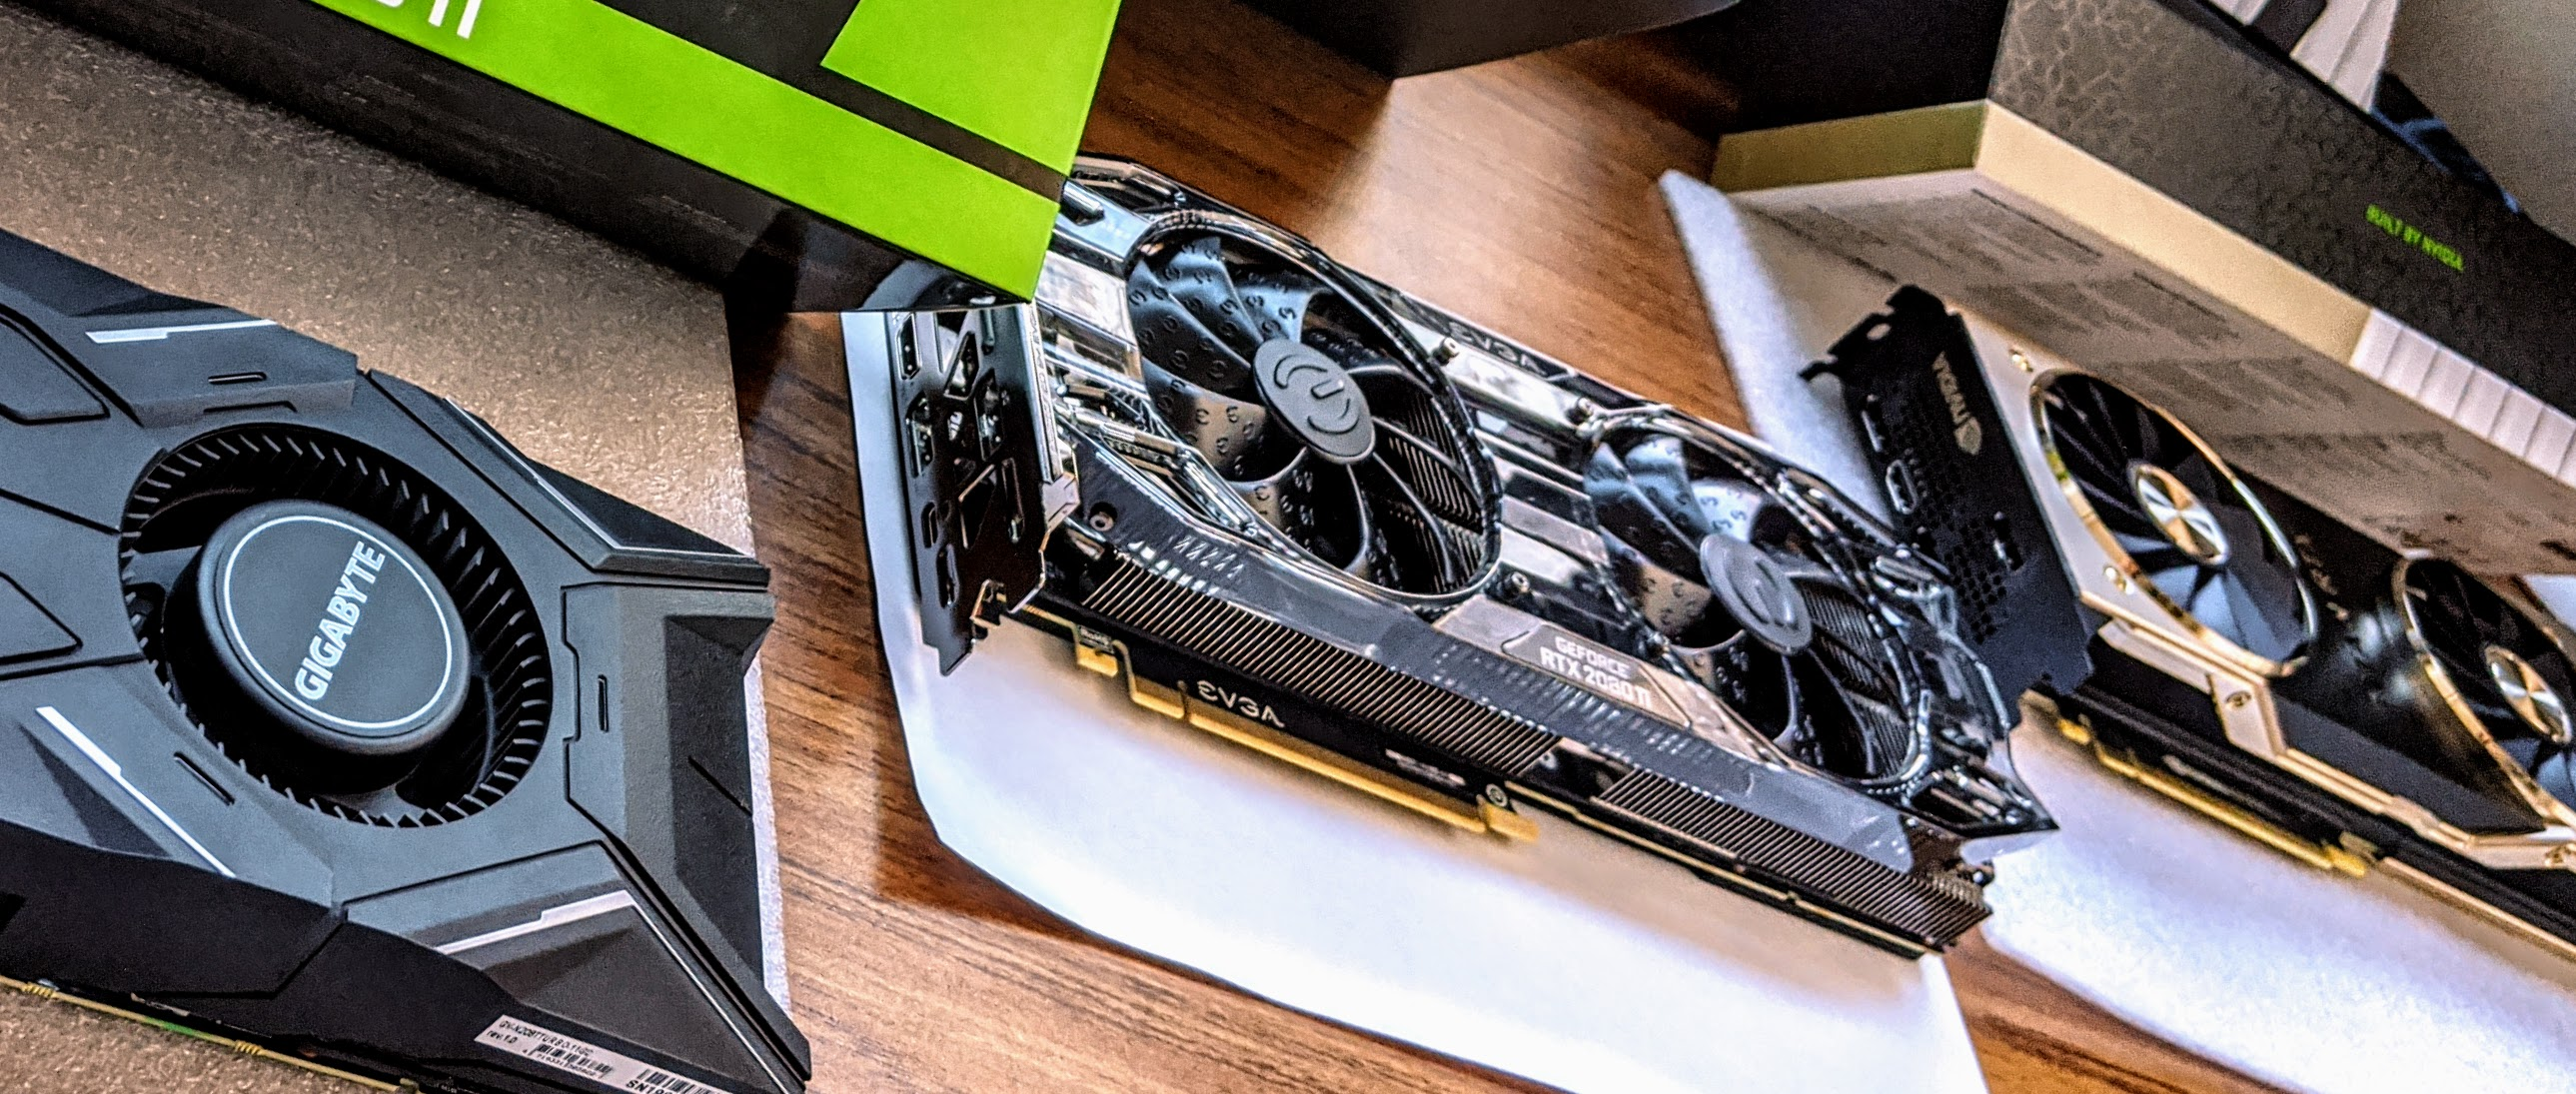 Benchmarking: Which GPU for Deep Learning?